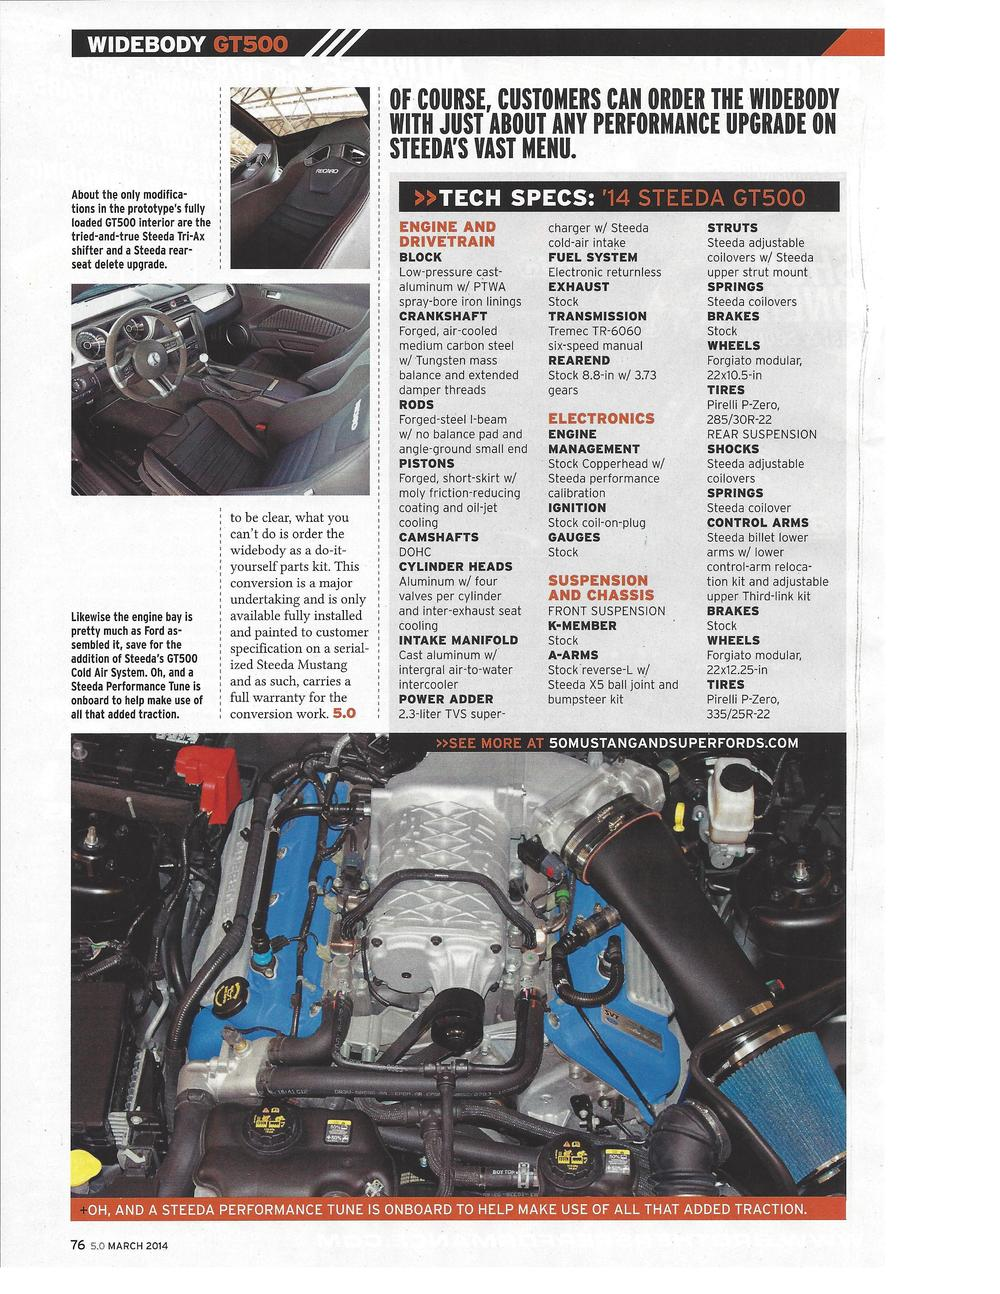 Steeda Wide-Body GT500 (5.0 March 2014)-page-005.jpg